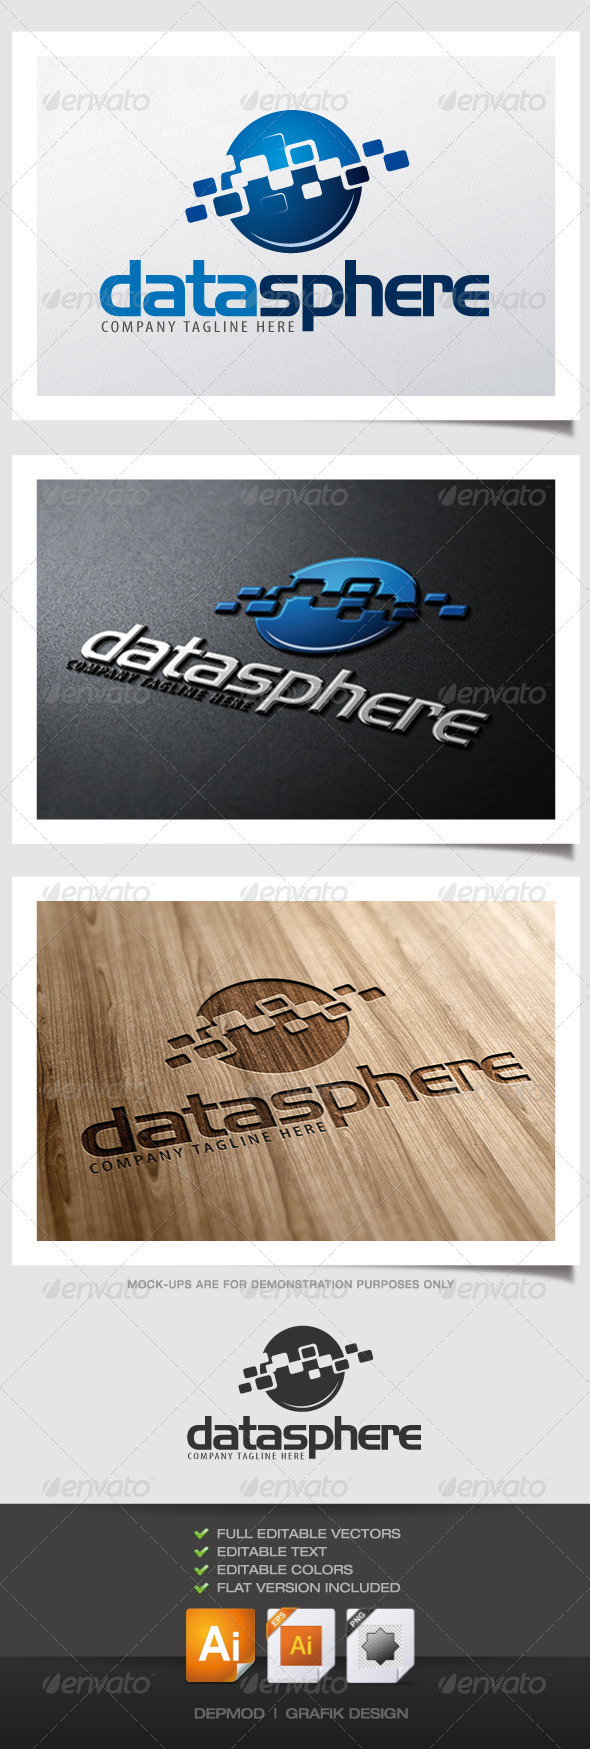 Data Sphere Logo - Abstract Logo Templates